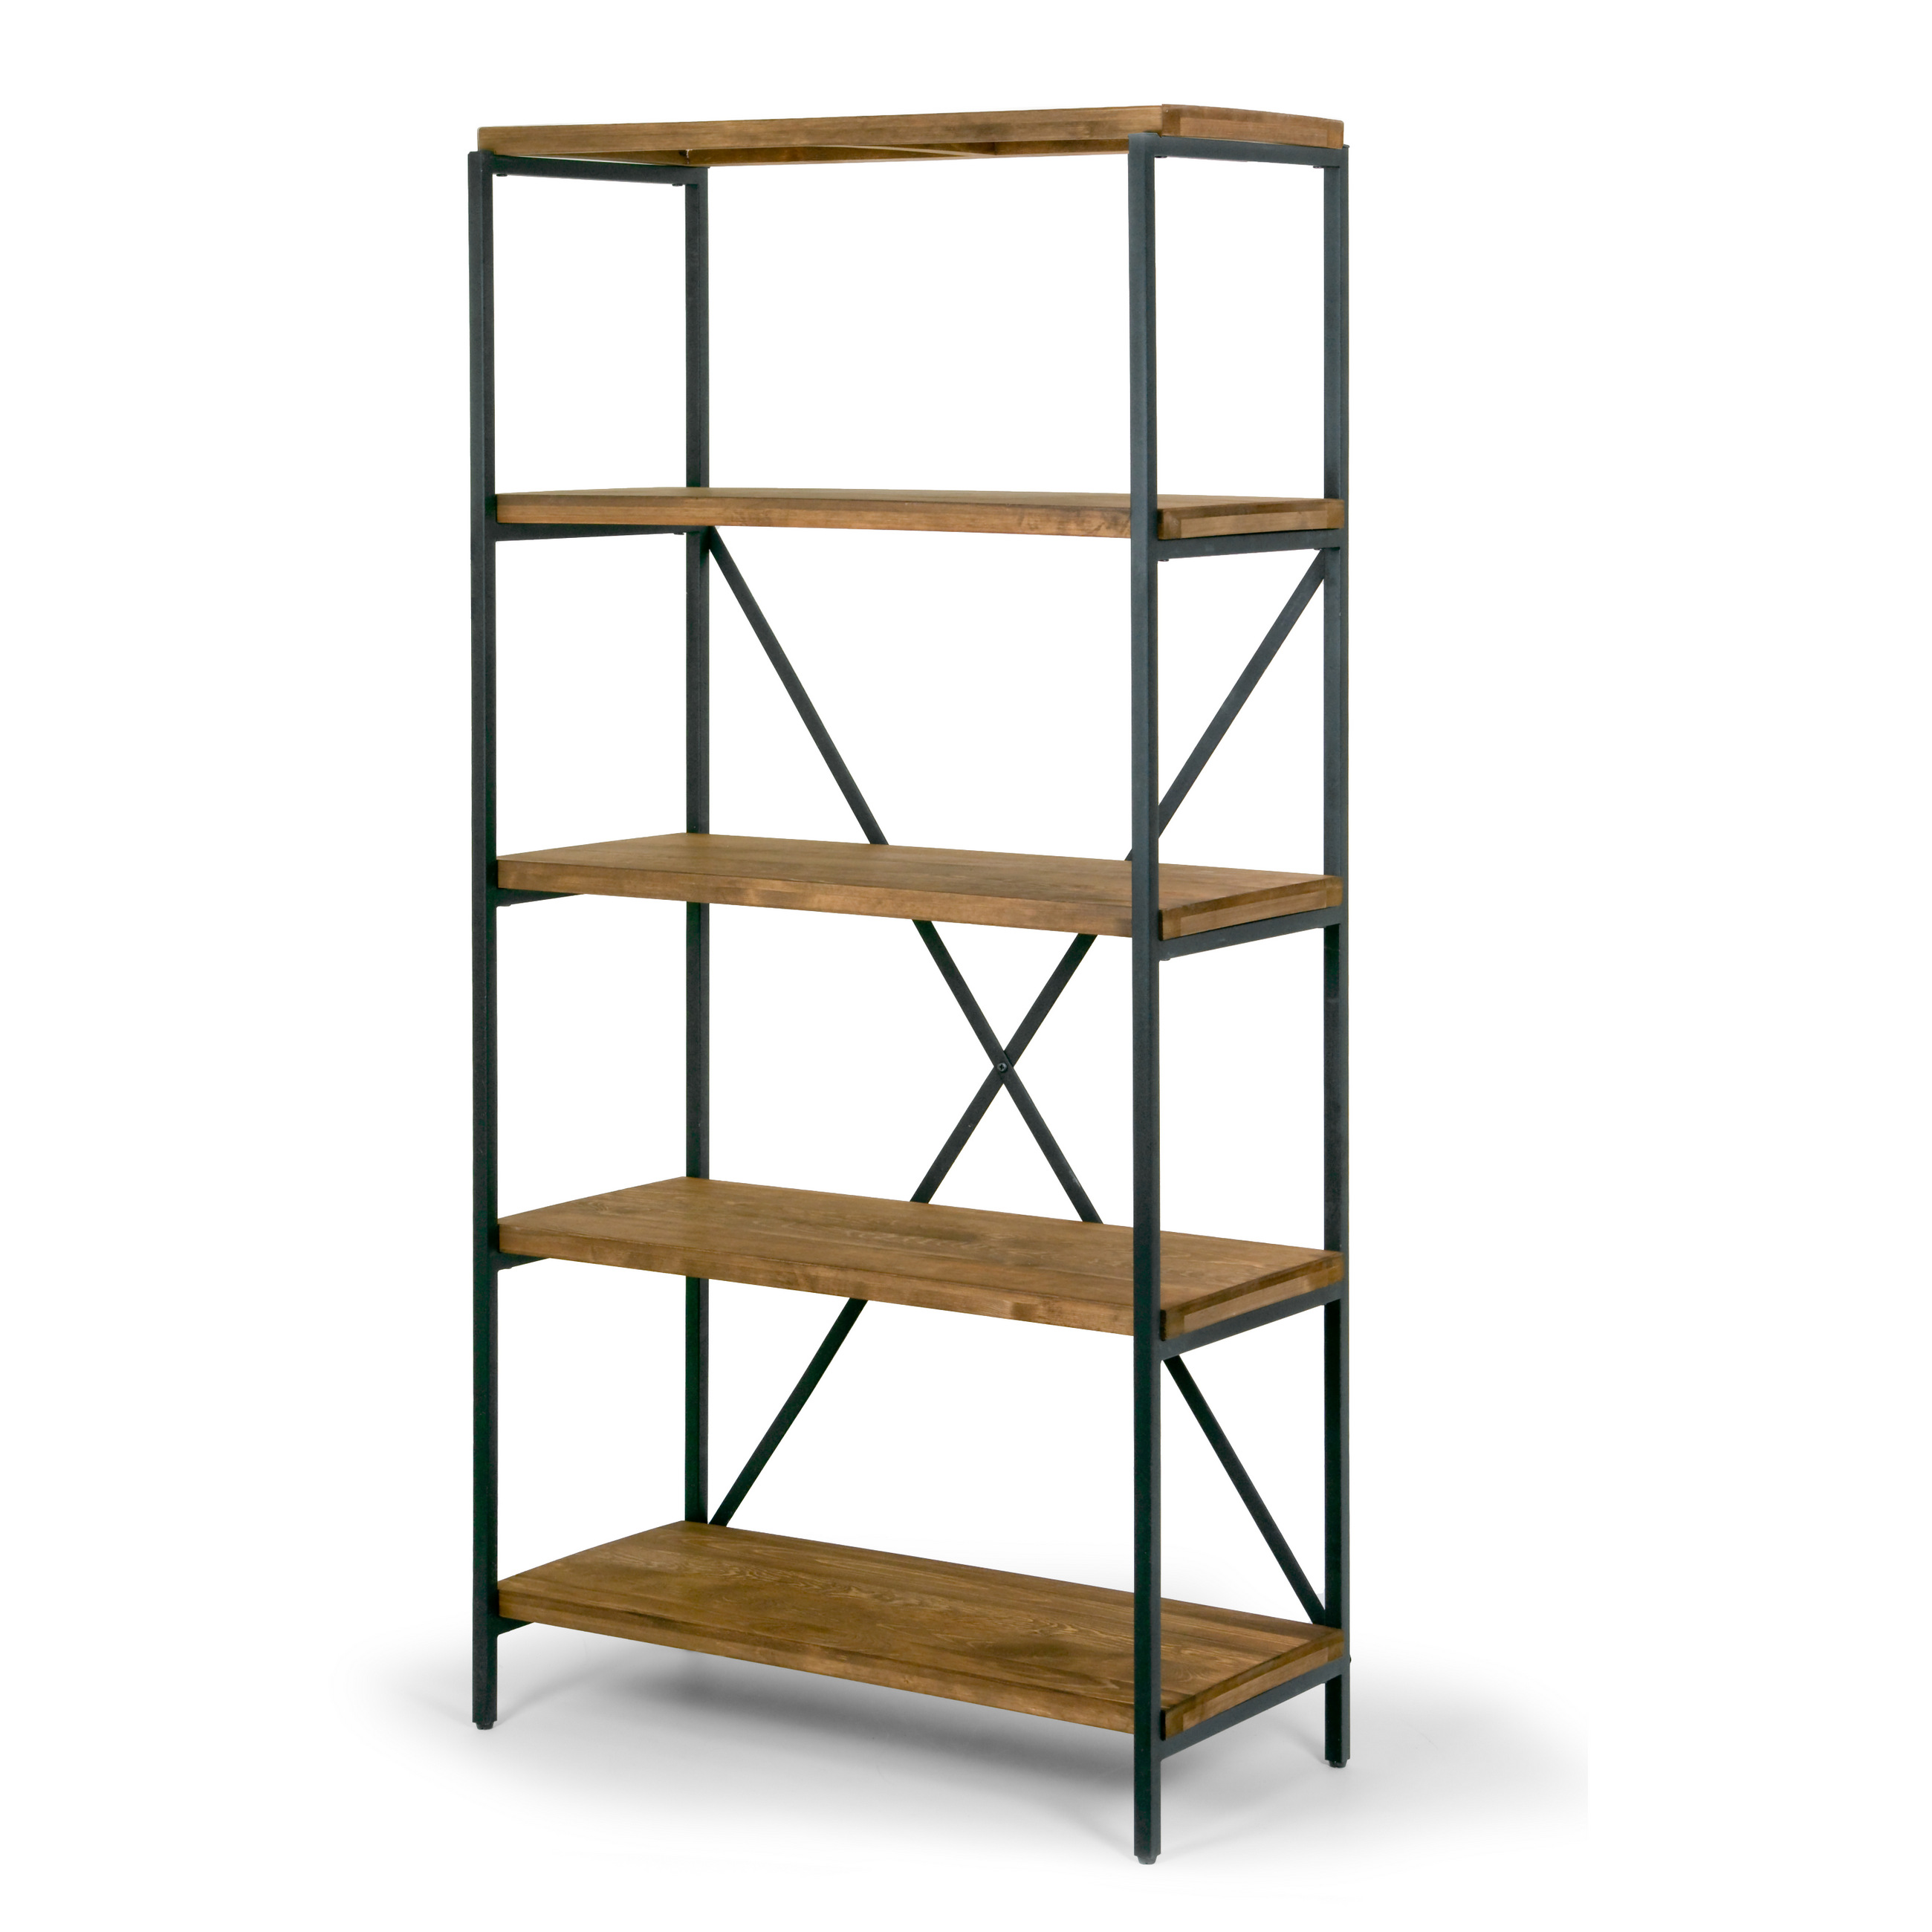 "Ailis 67"" Brown Pine Wood Shelf Etagere Bookcase Media Center with Metal Frame by Glamour Home"